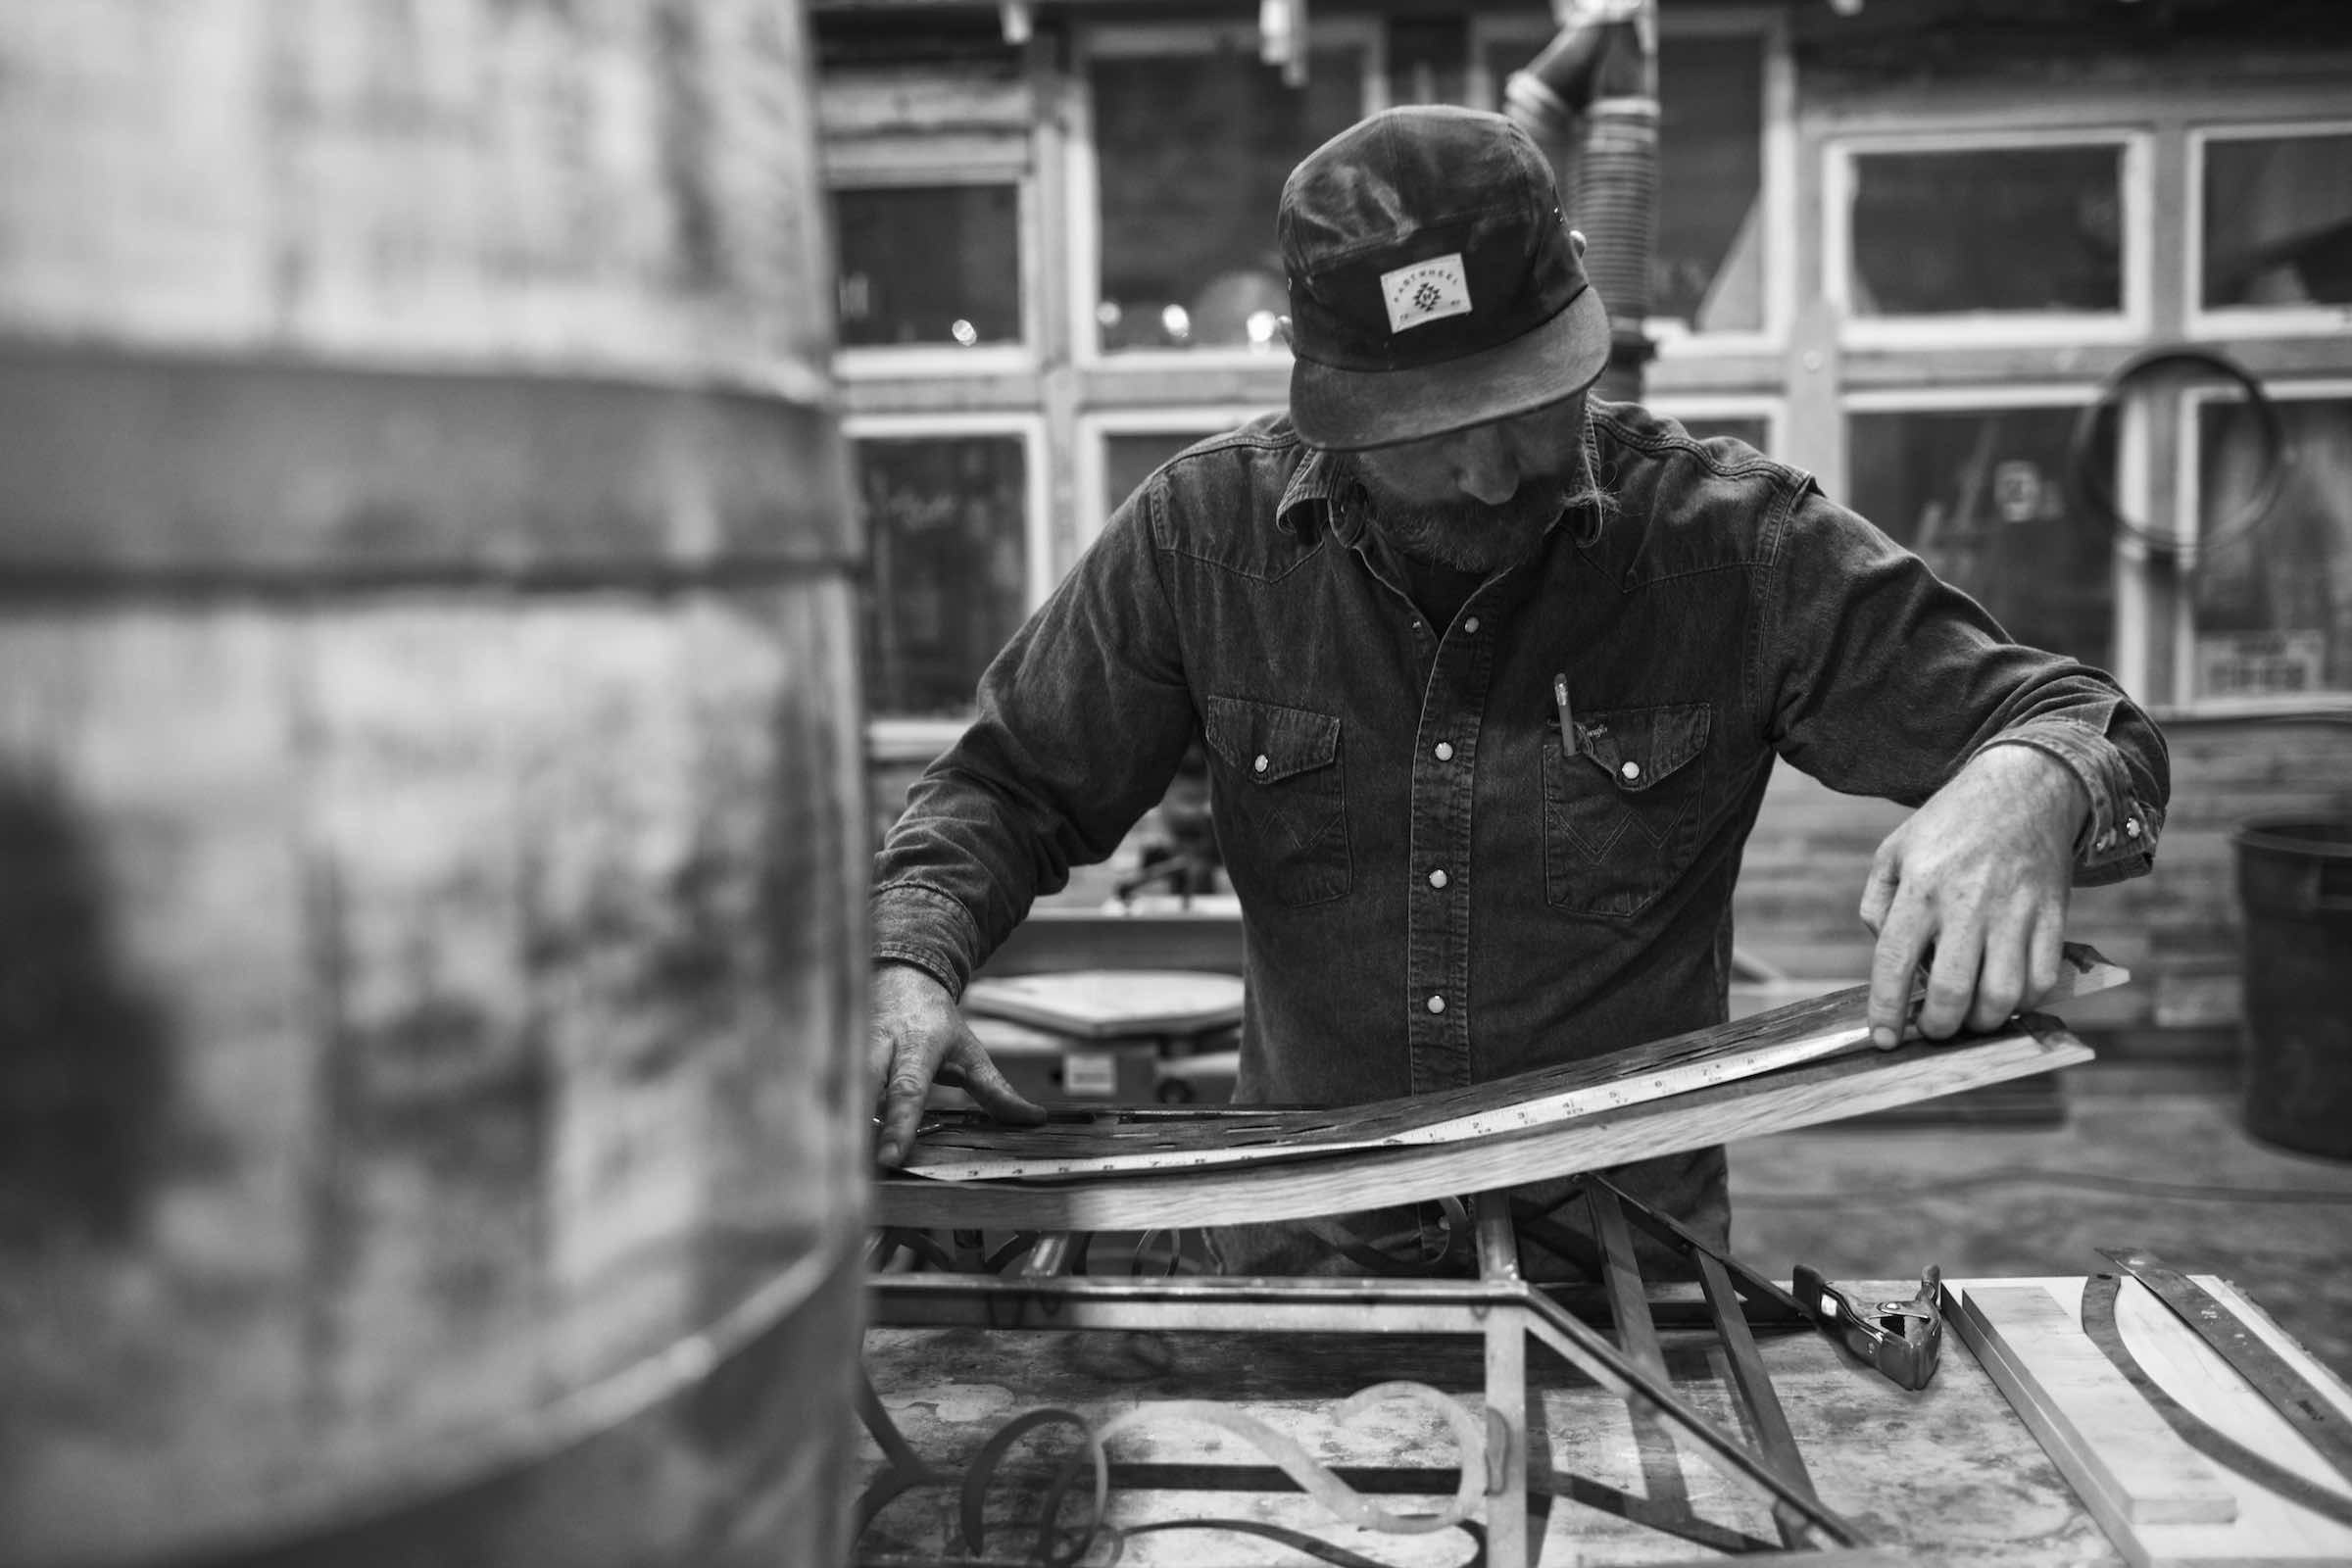 Jody Horton Photography - Builder using a measuring tape in the workshop, shot in B&W.